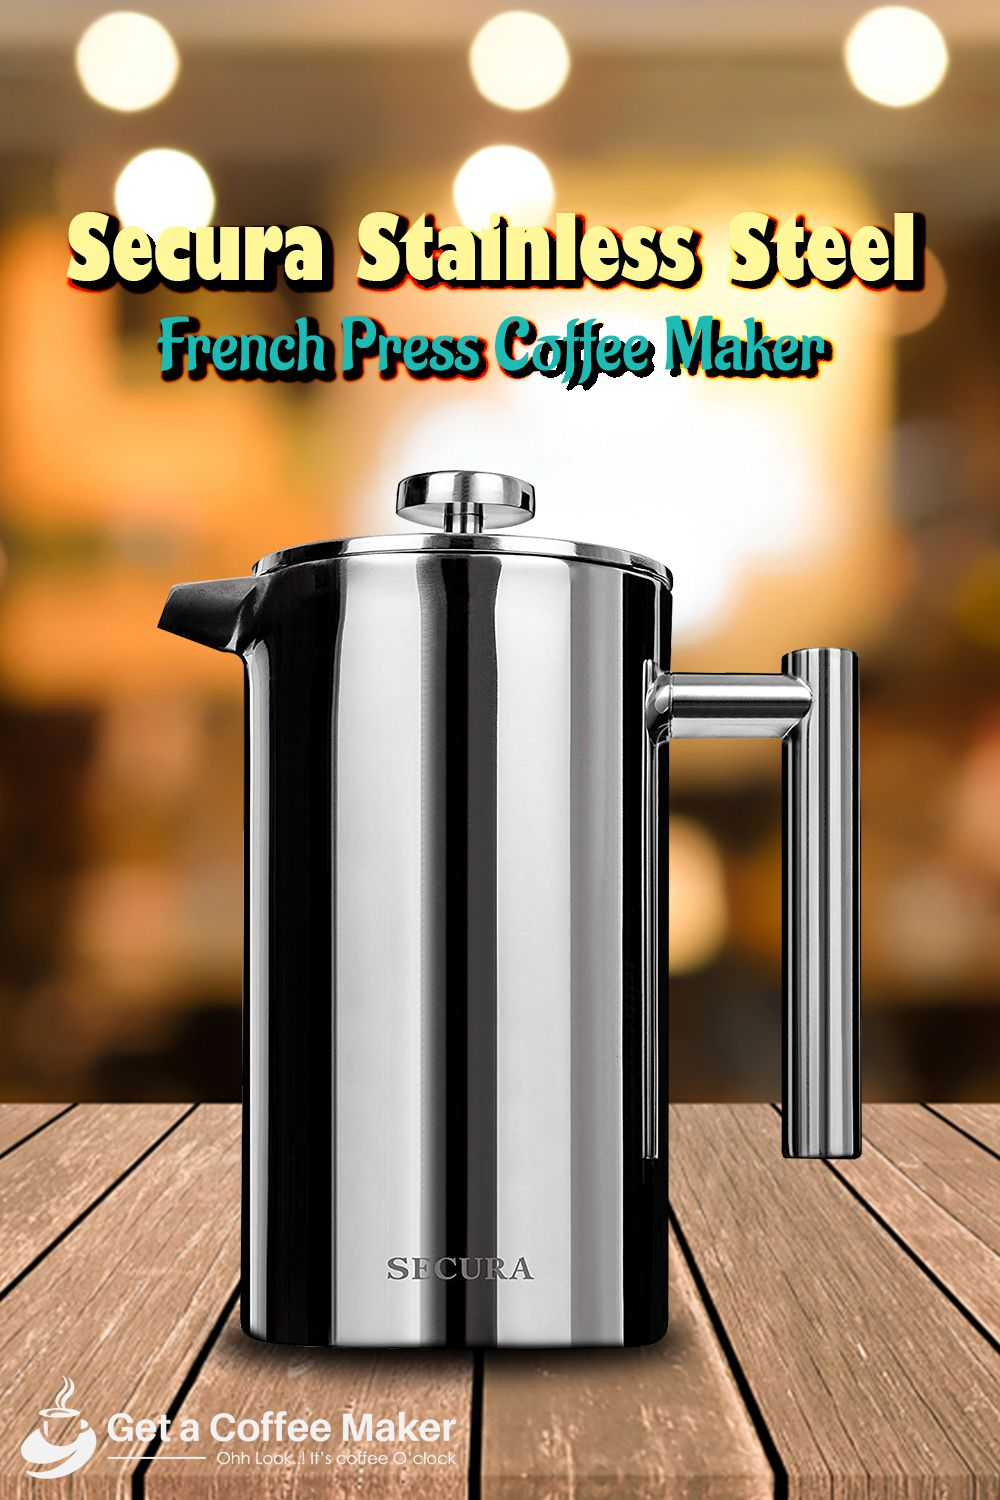 Top 10 French Press Coffee Makers (June 2020) Reviews